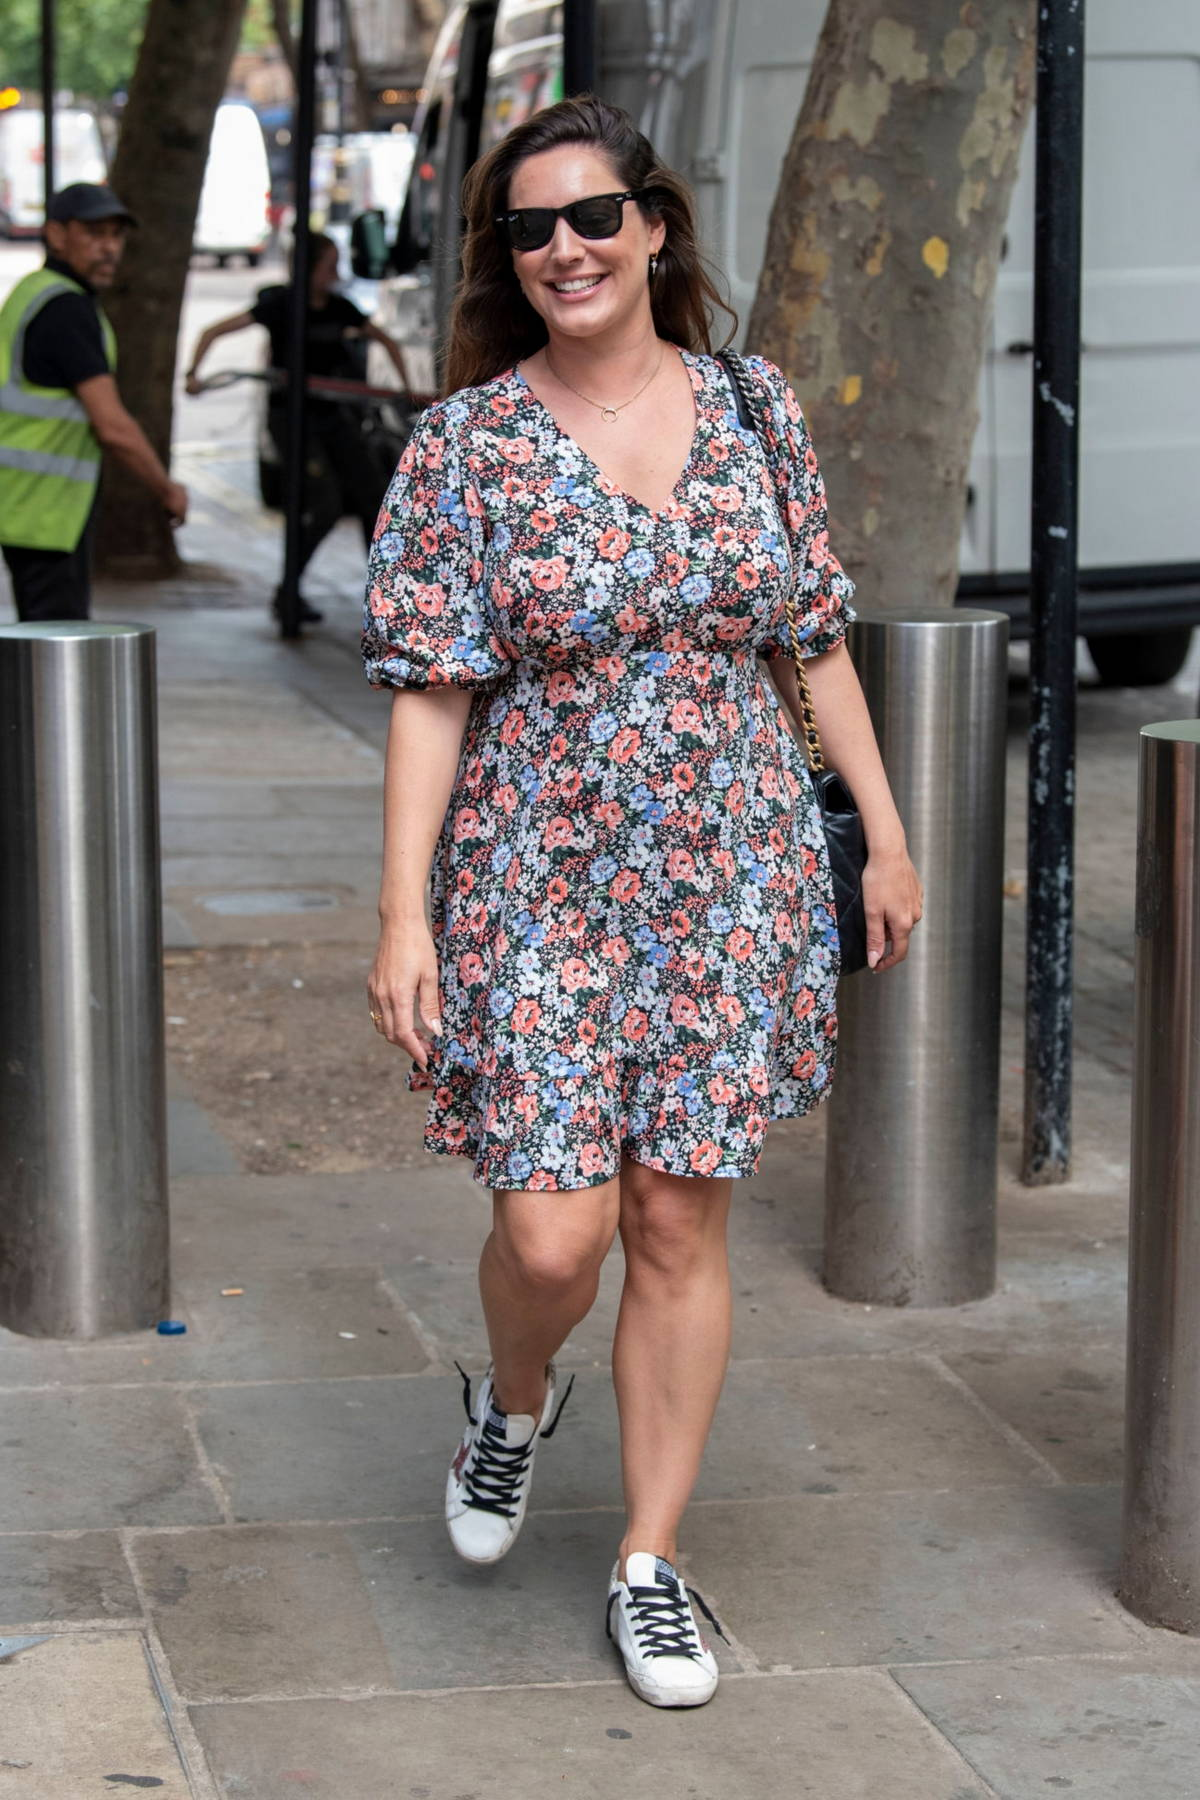 Kelly Brook wears a floral dress as she leaves the Global Studios after her breakfast show on Heart Radio in London, UK